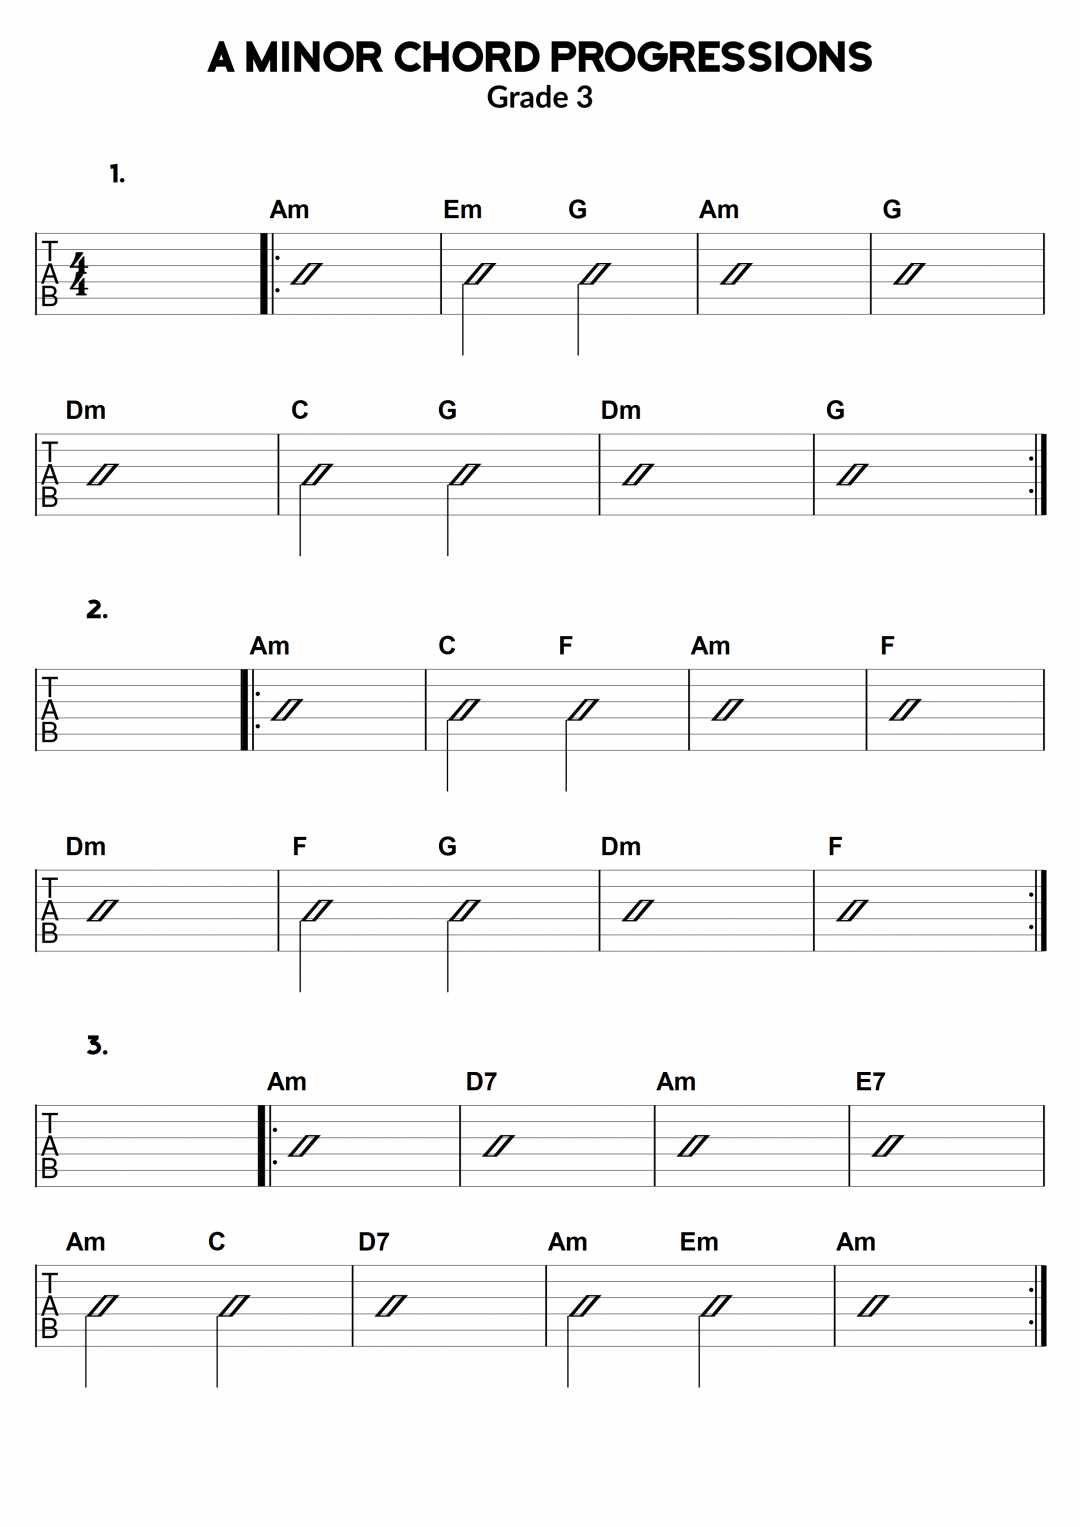 A minor Chord Progressions Exercises – Grade 3